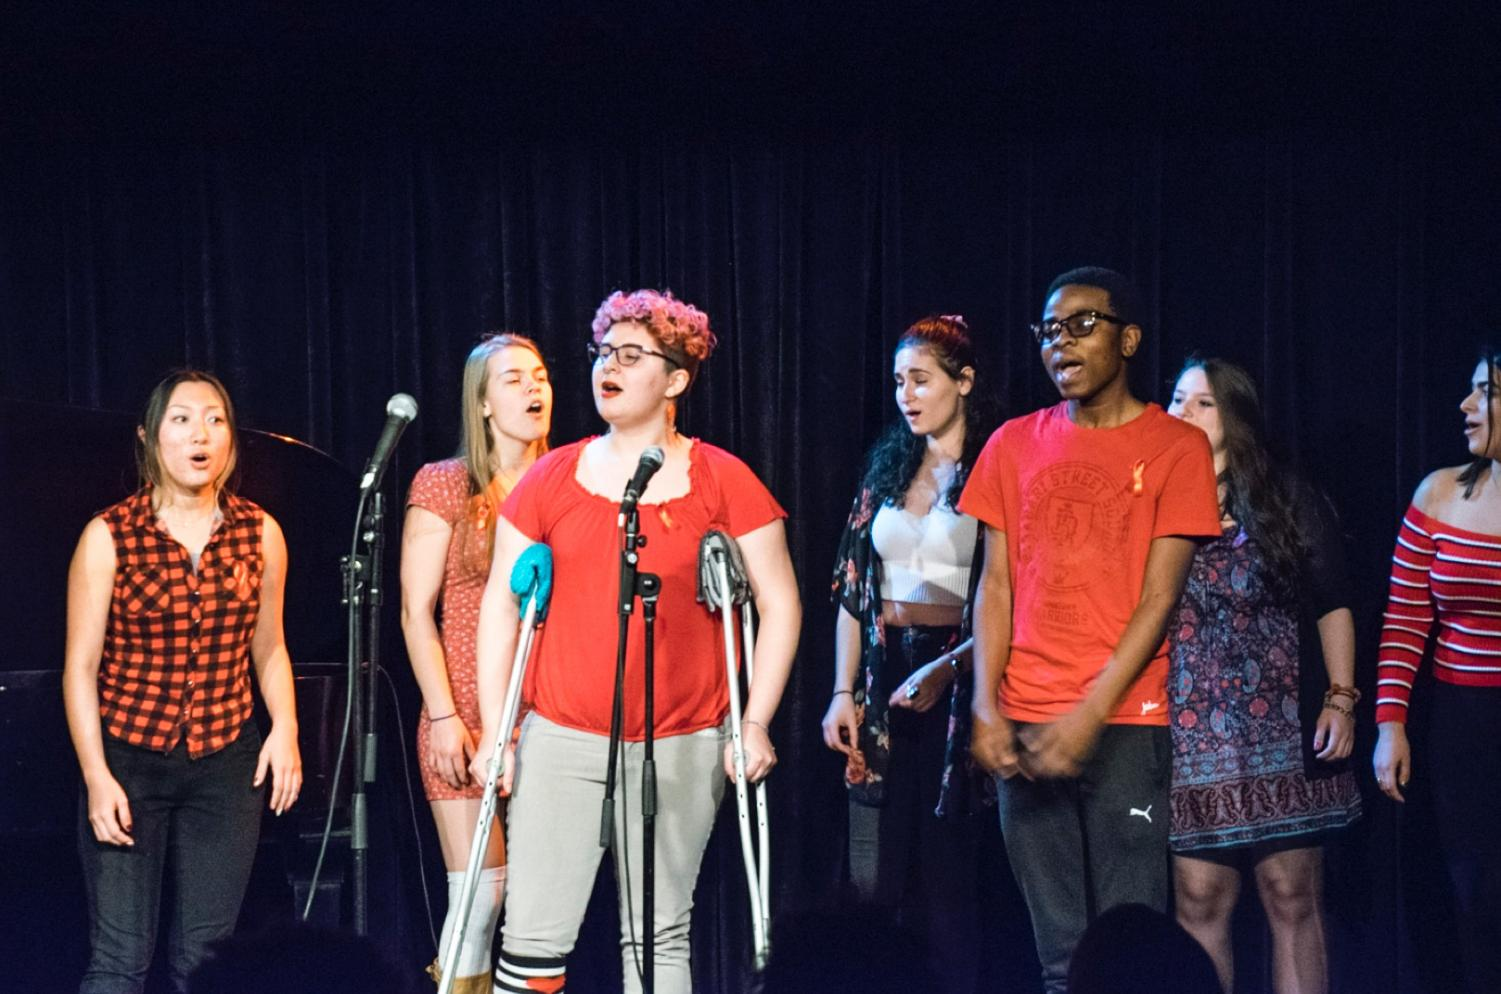 "Students perform on stage at the Cat in the Cream on Dec. 1, as part of a series of performances to commemorate World AIDS Day. The event, titled ""Music, Healing & Celebration of Life,"" was dedicated ""in memory of all those who lost their lives to AIDS, in celebration of all those living despite"" and featured The Obertones, OSLAM, and Pitch Please, as well as a variety of individual performers."